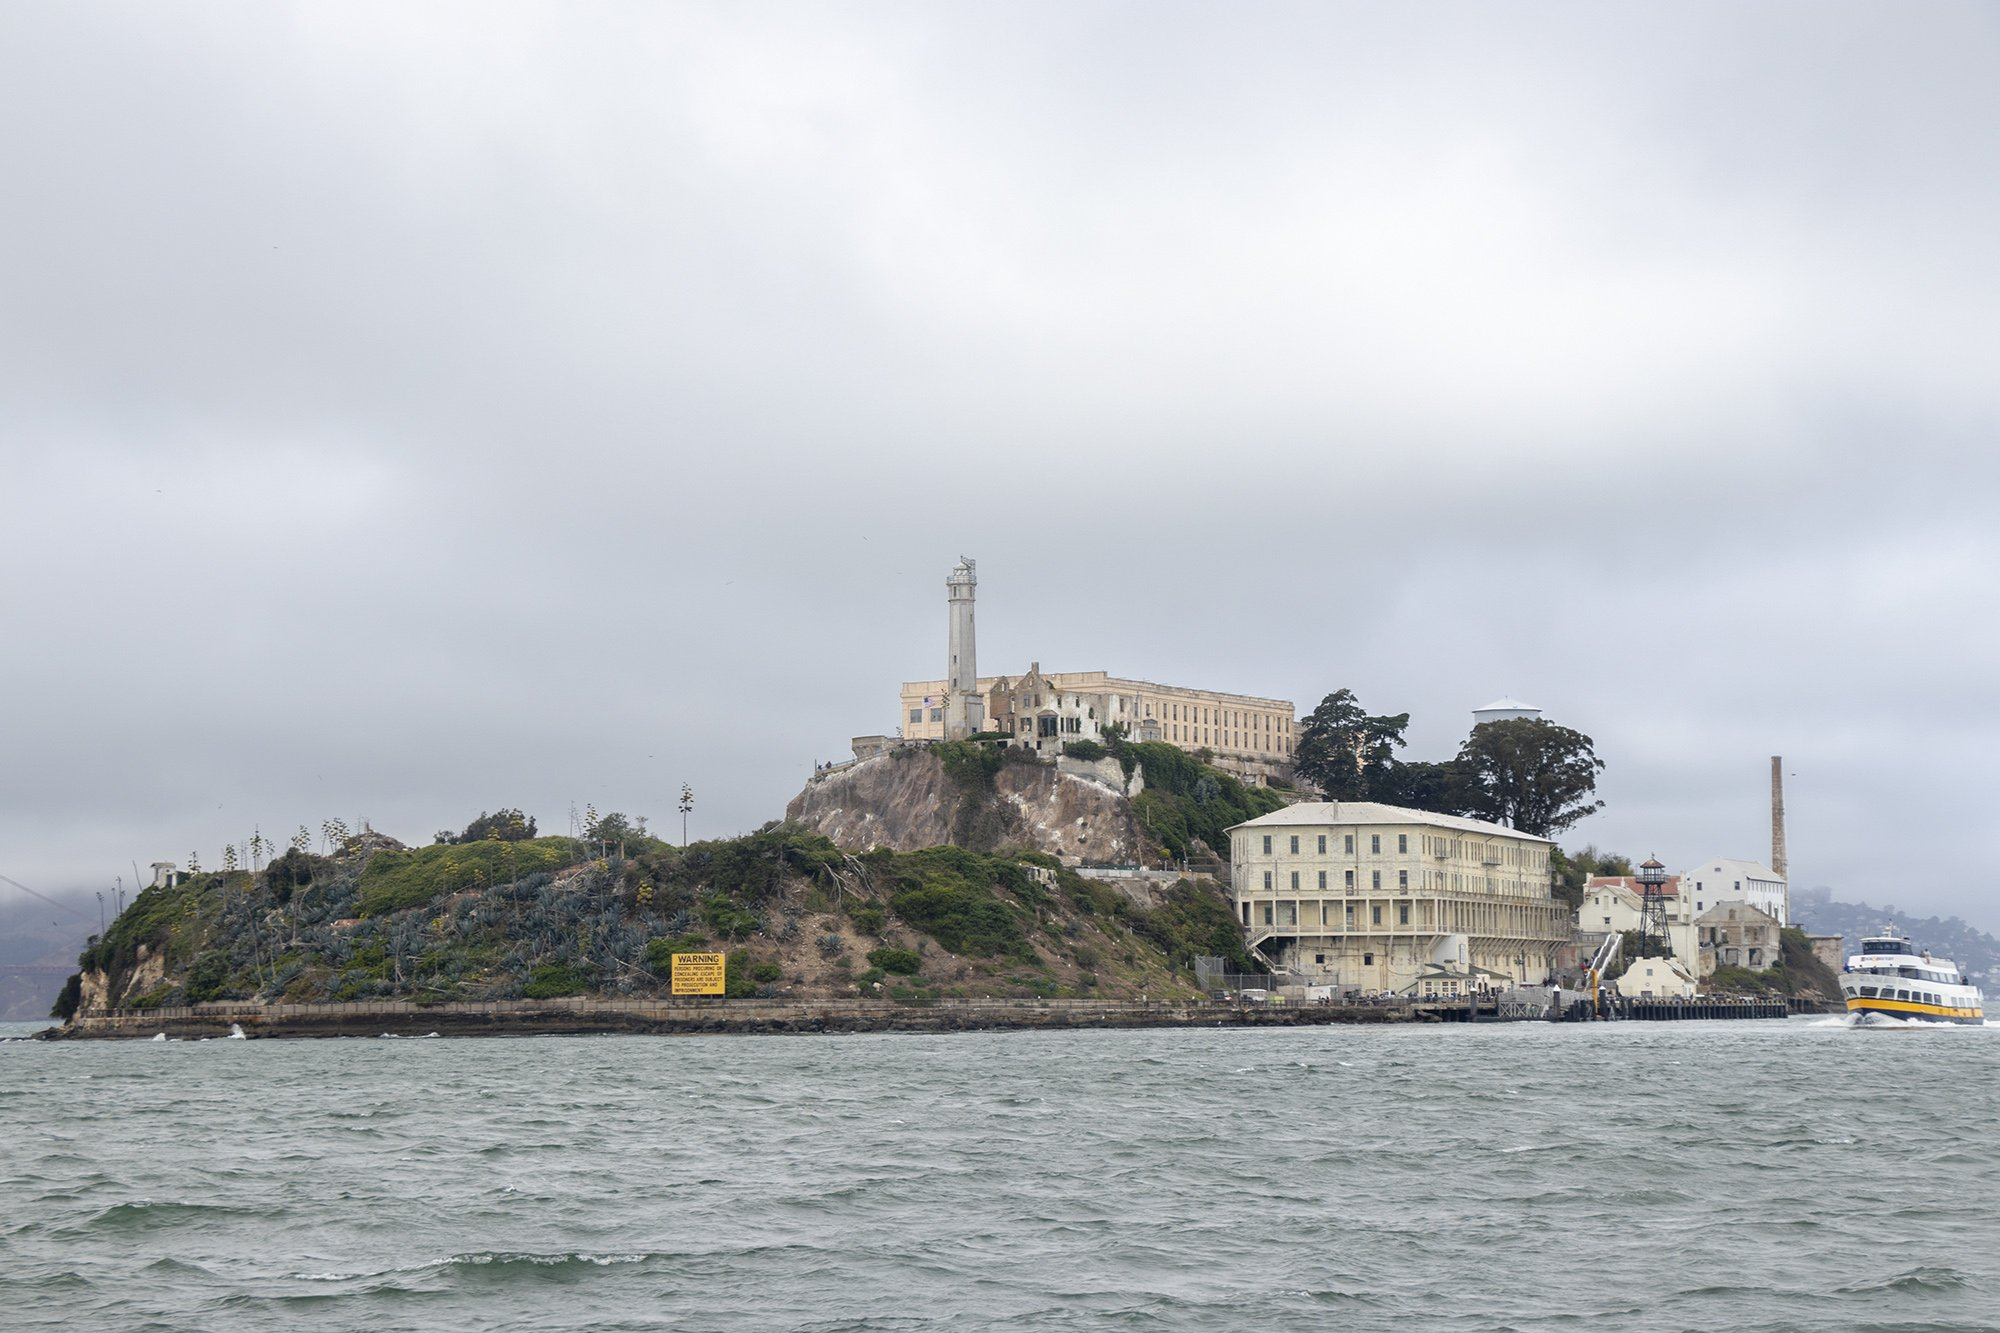 Alcatraz Cruise and Alcatraz island